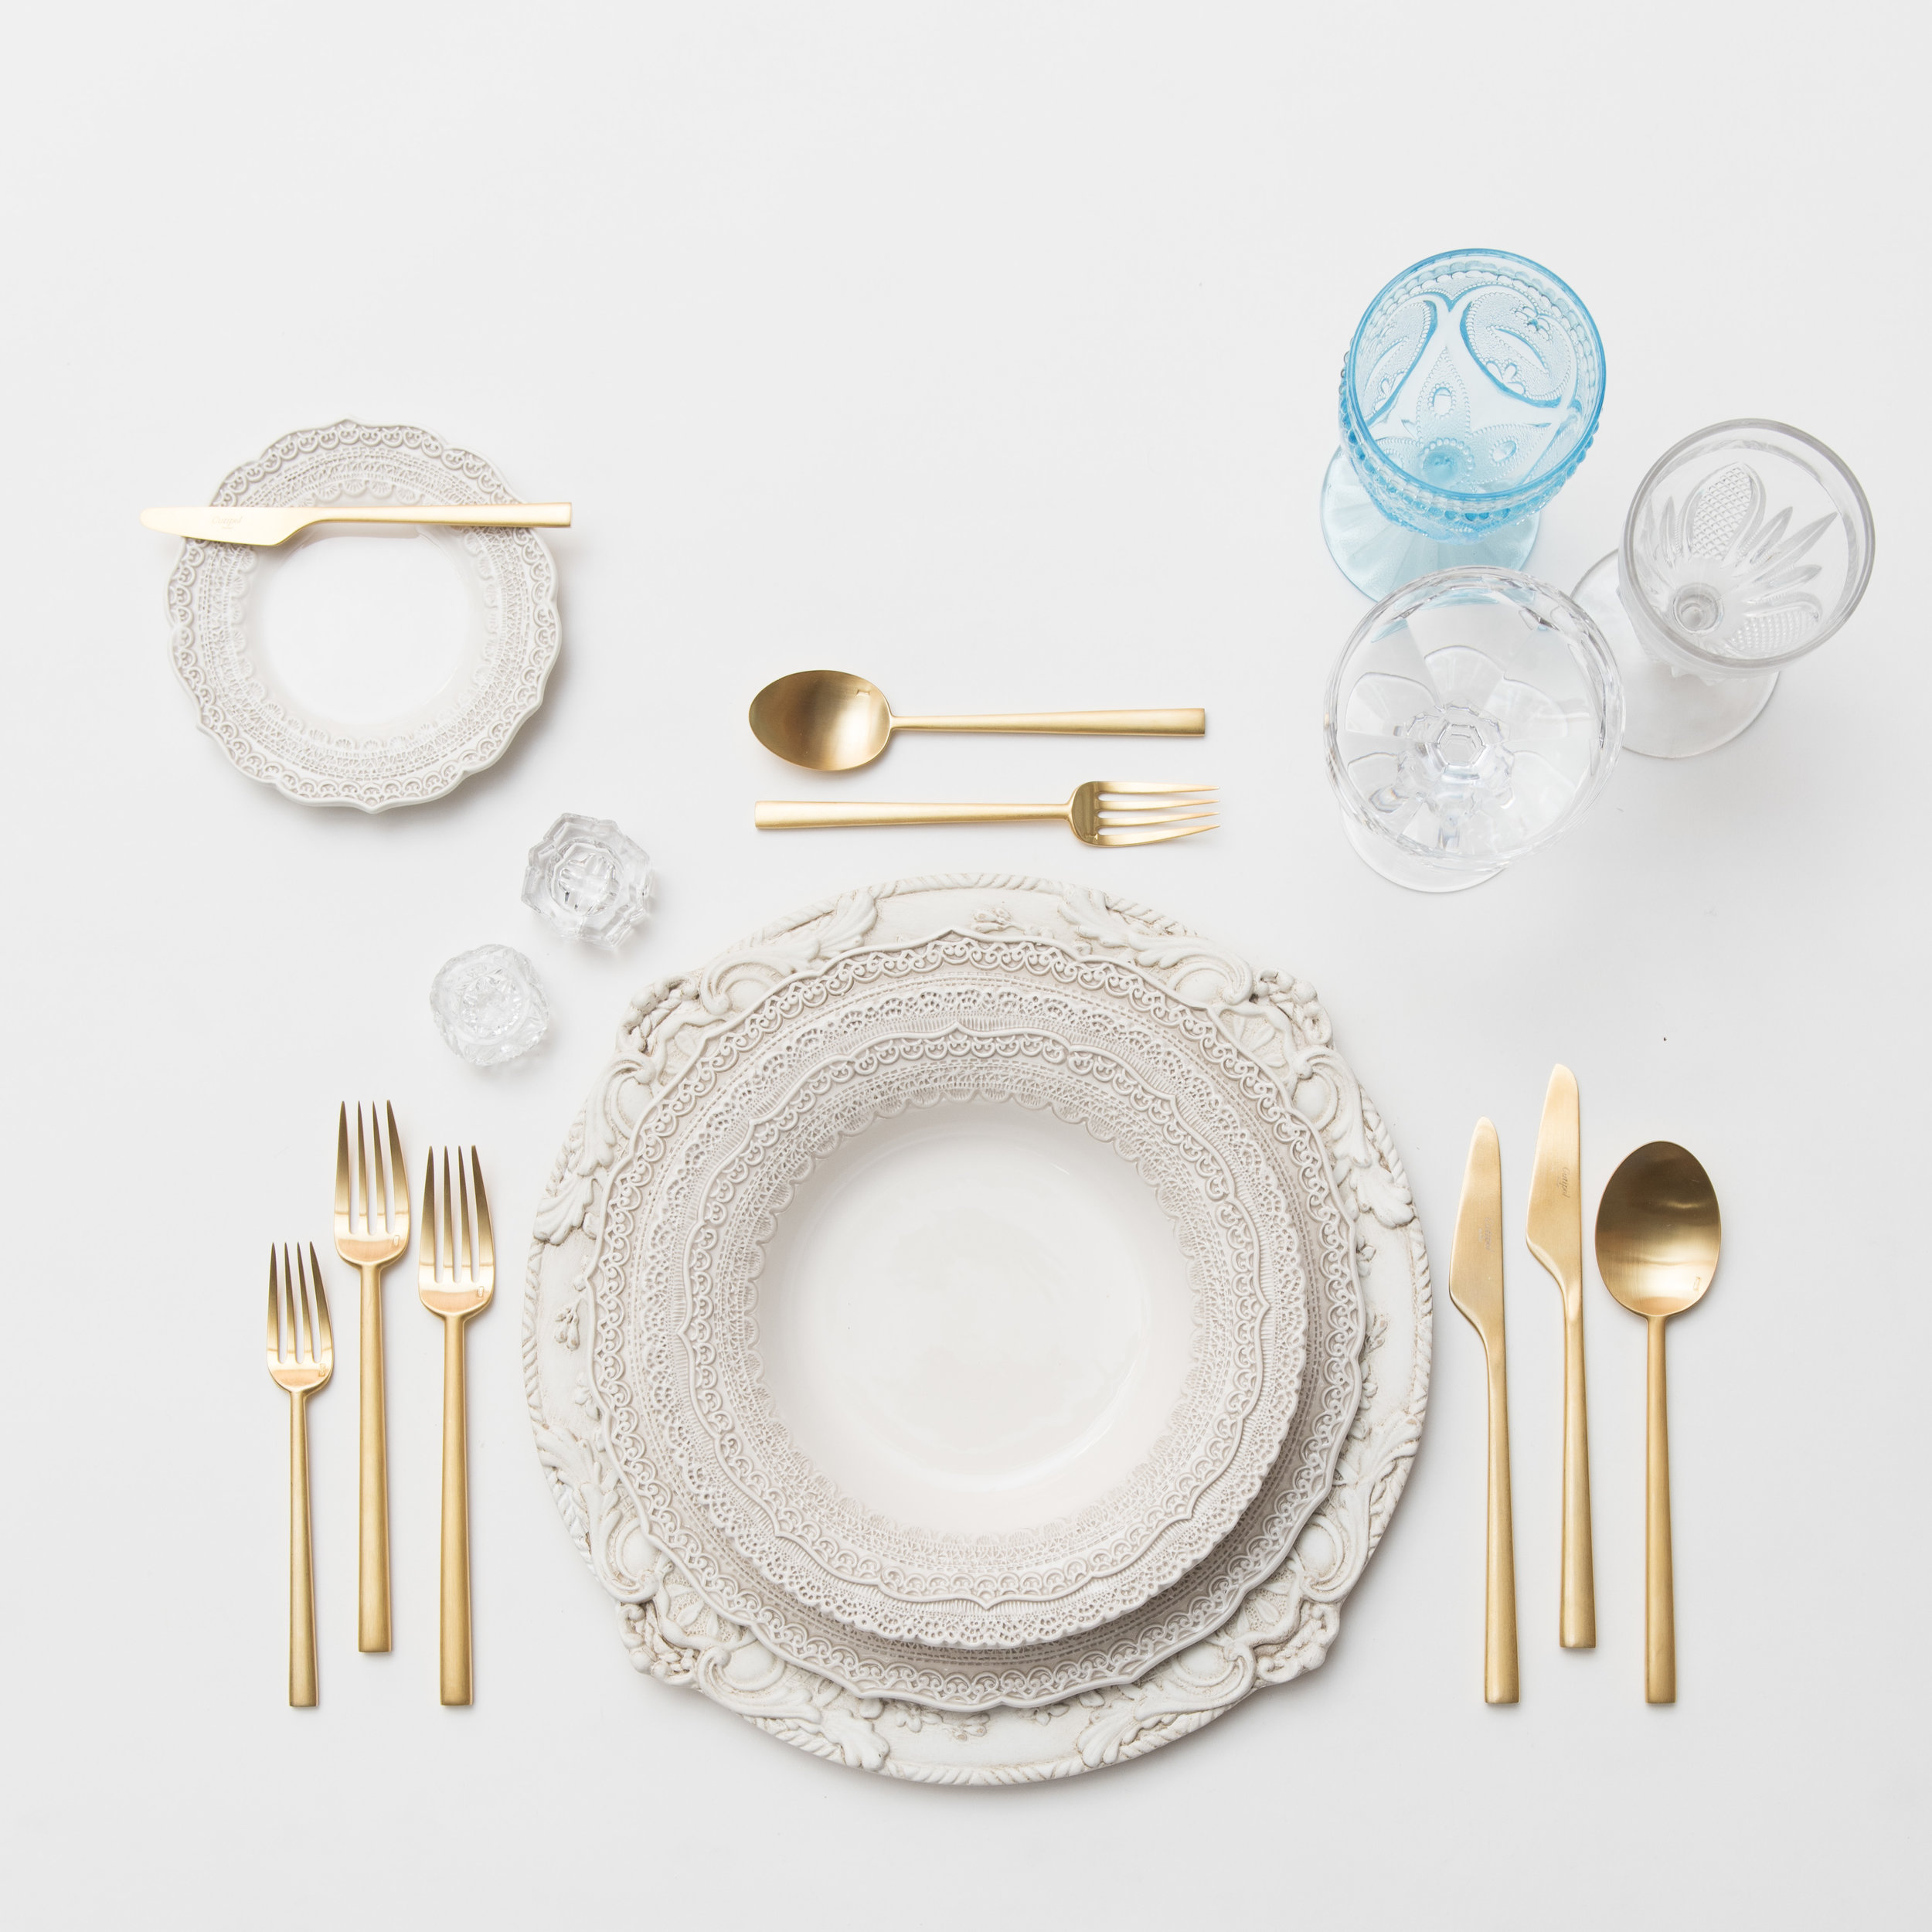 RENT: Verona Chargers in Antique White + Lace Dinnerware in White + Rondo Flatware in Brushed 24k Gold + Aqua Vintage Goblets + Early American Pressed Glass Goblets + Vintage Champagne Coupes + Antique Crystal Salt Cellars  SHOP:Verona Chargers in Antique White +Rondo Flatware in Brushed 24k Gold